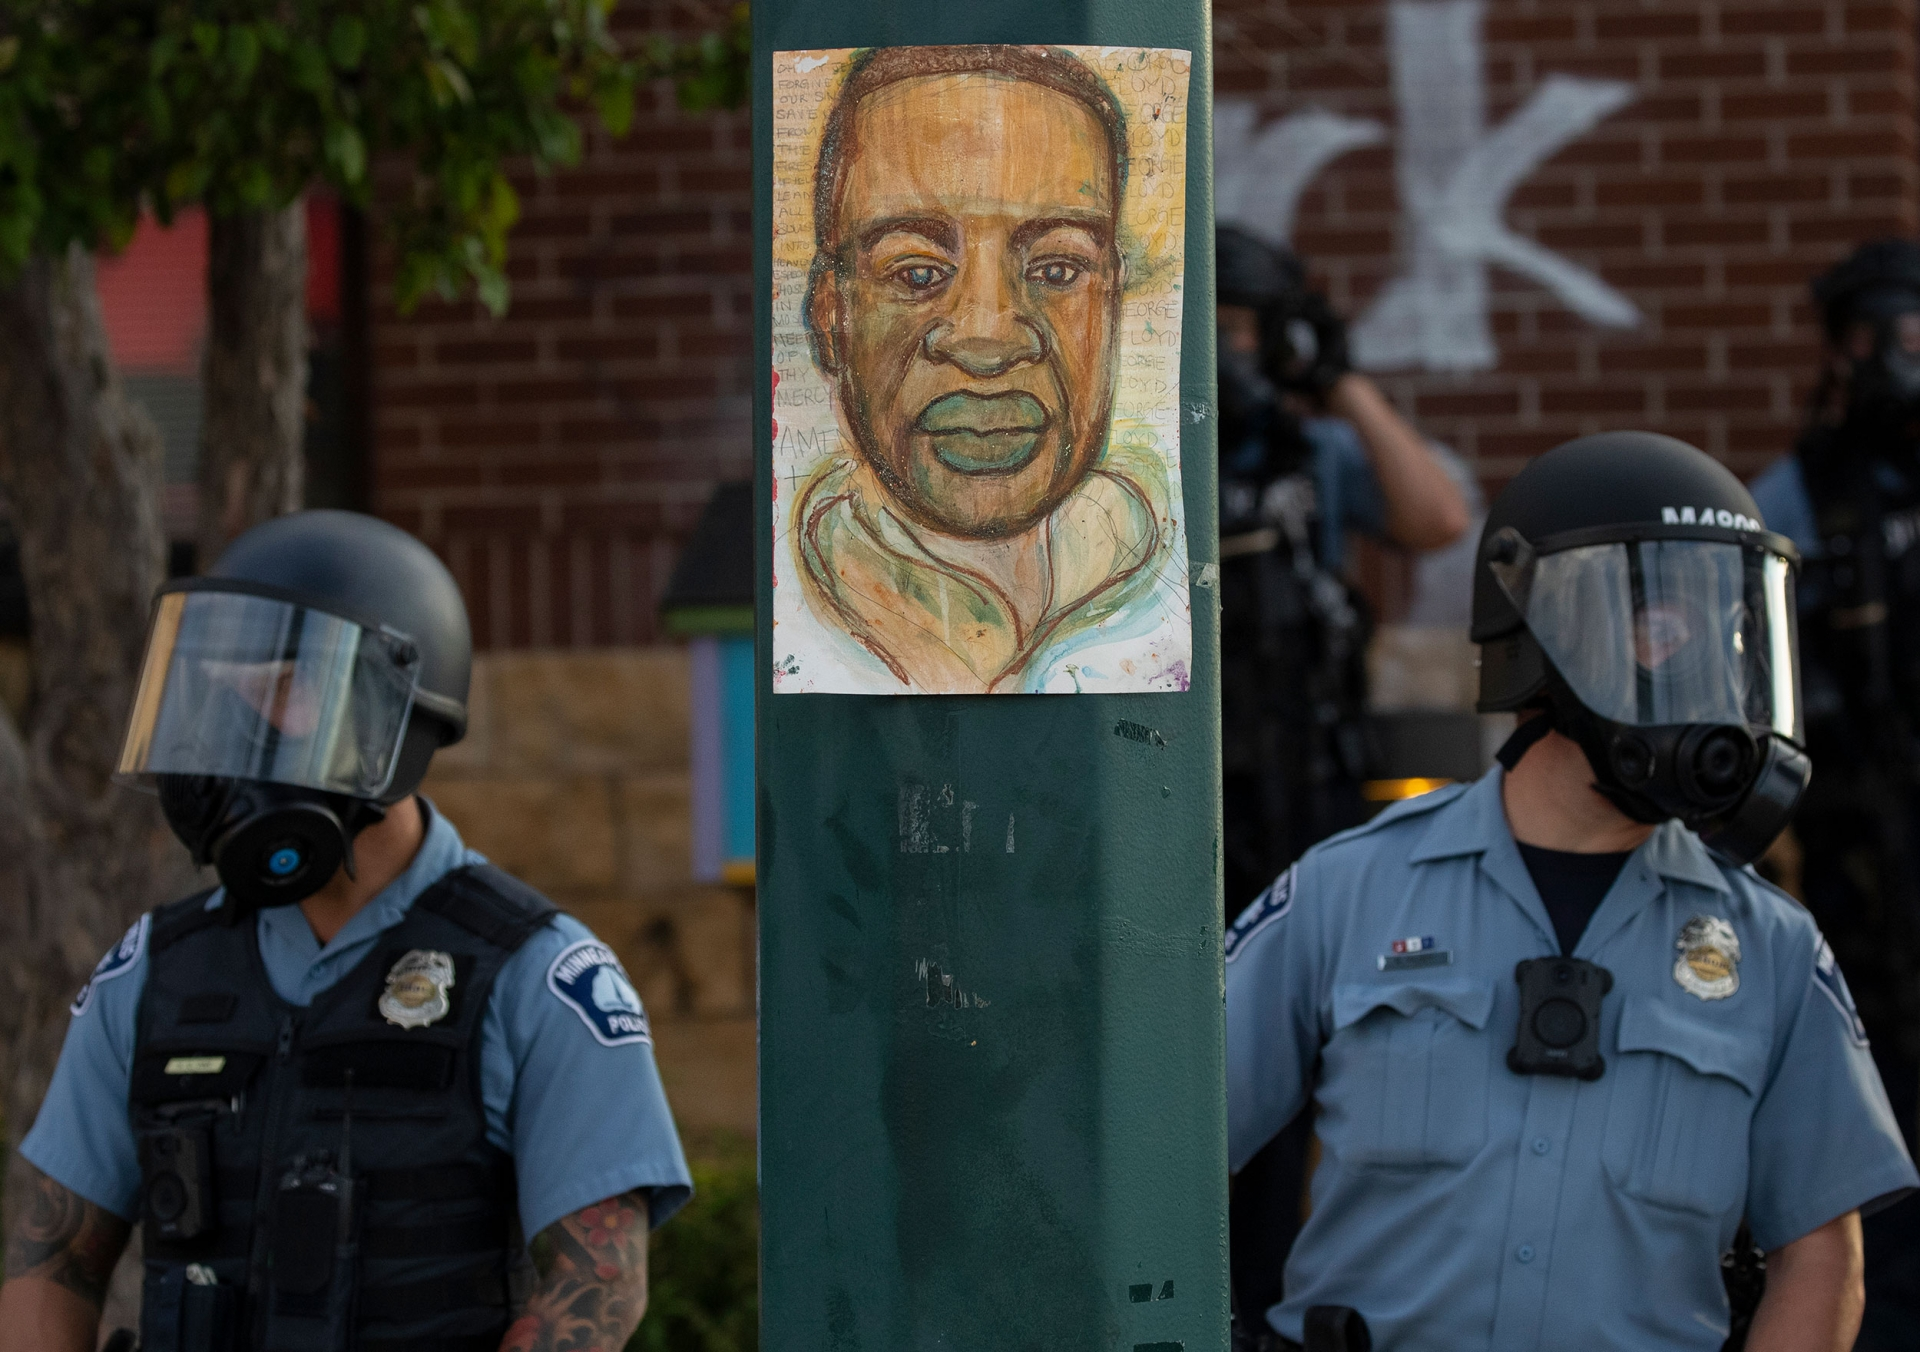 Protests in America update: Minneapolis city council is looking to move funding from police